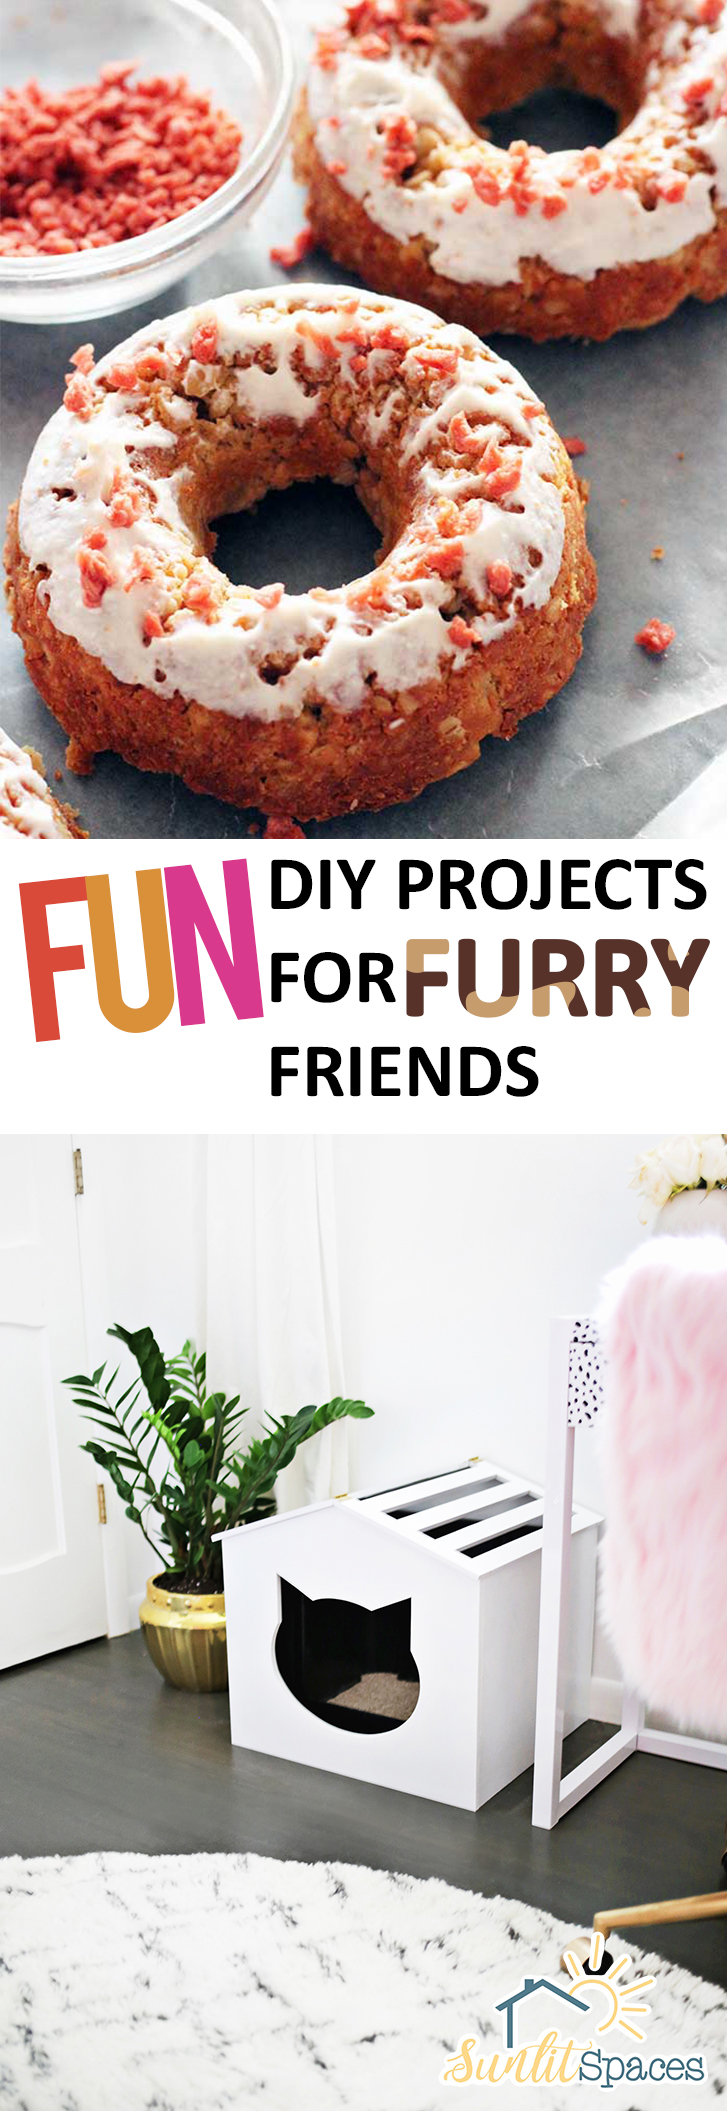 Fun diy projects for furry friends for Diy projects to do with friends